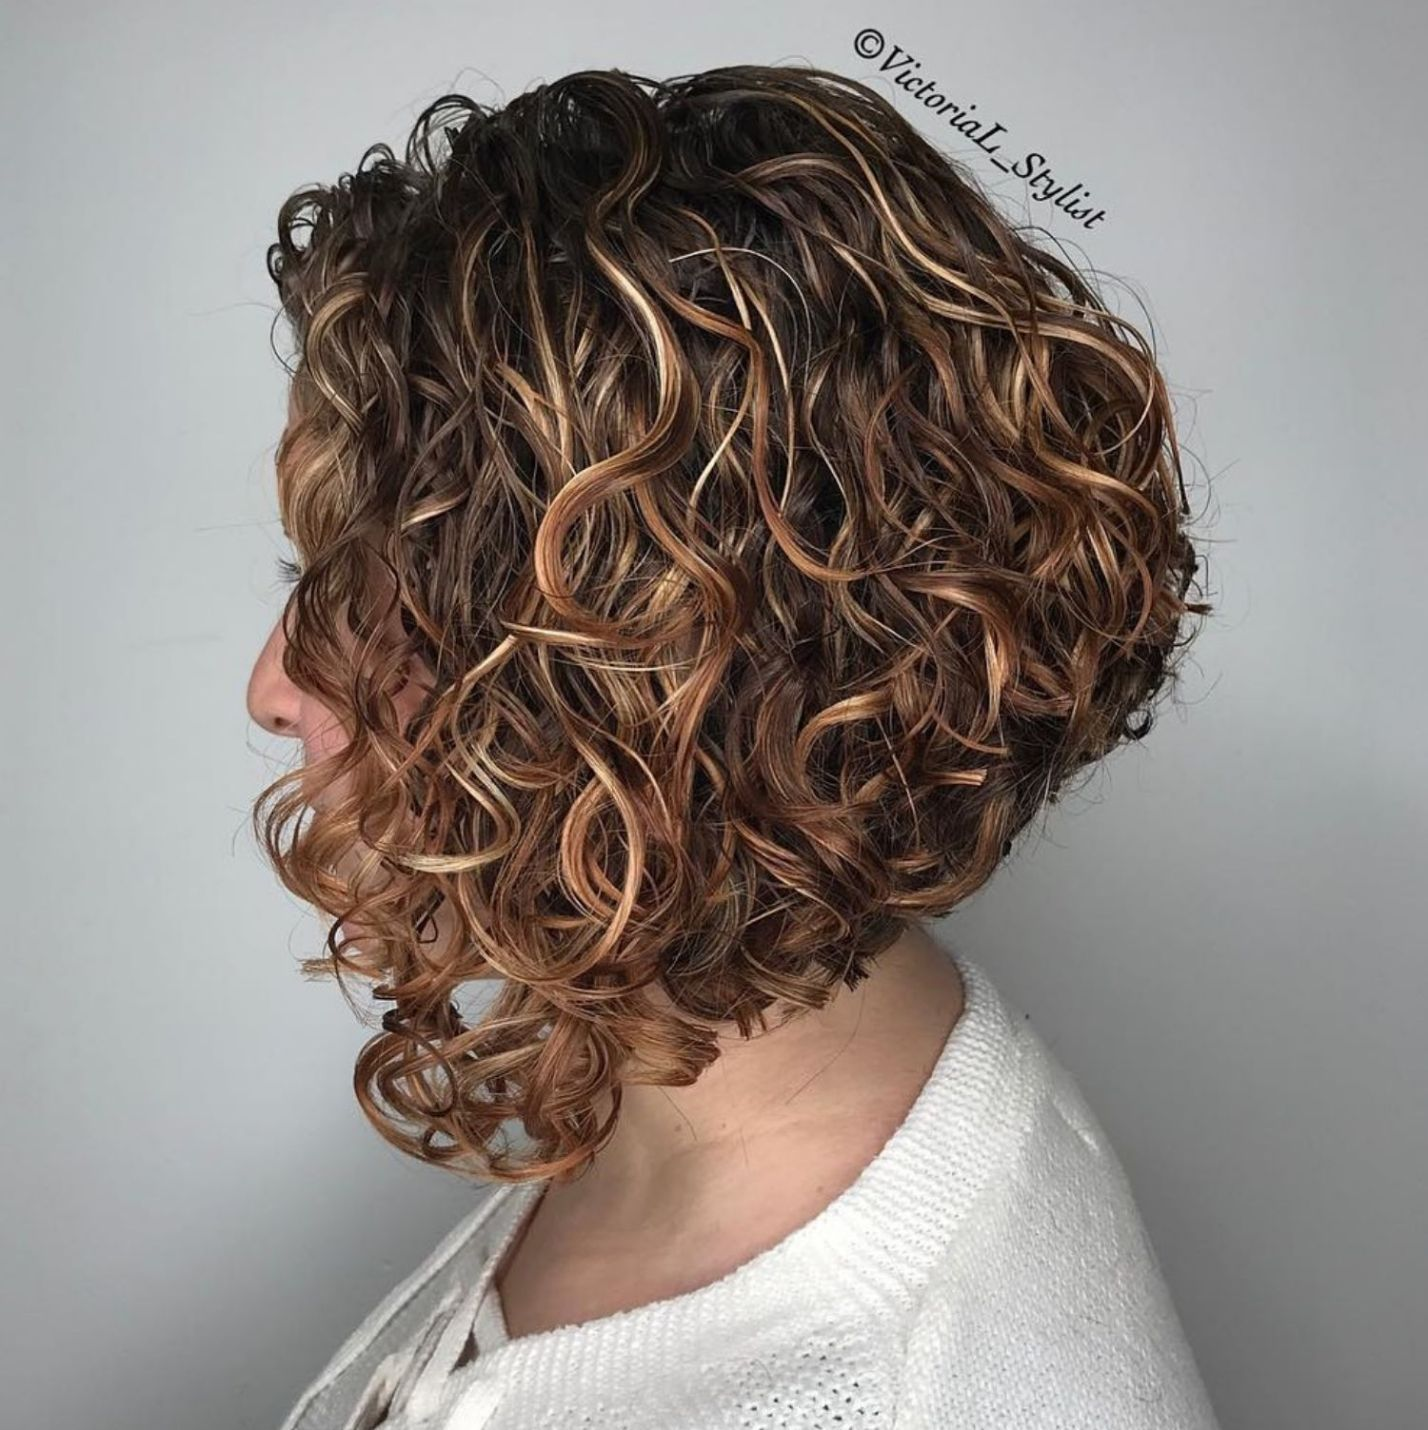 65 Different Versions Of Curly Bob Hairstyle With Images